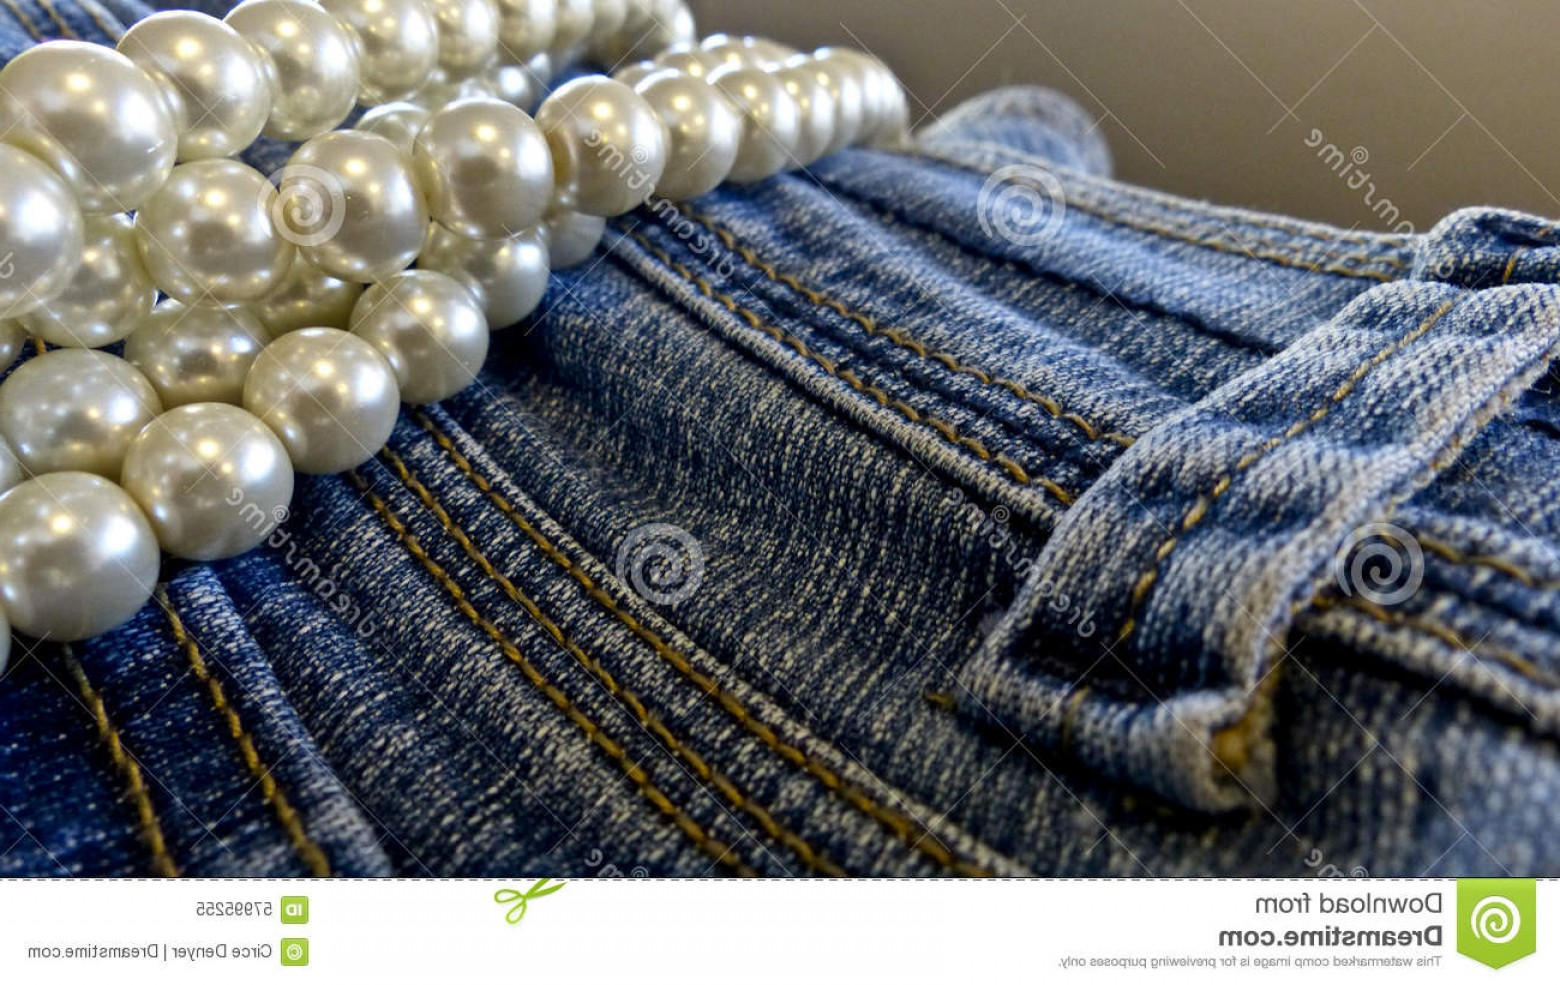 Denim And Pearls Vector: Stock Photo Blue Jeans Pearls Opposites Attract Fashion Laying Pair View Image